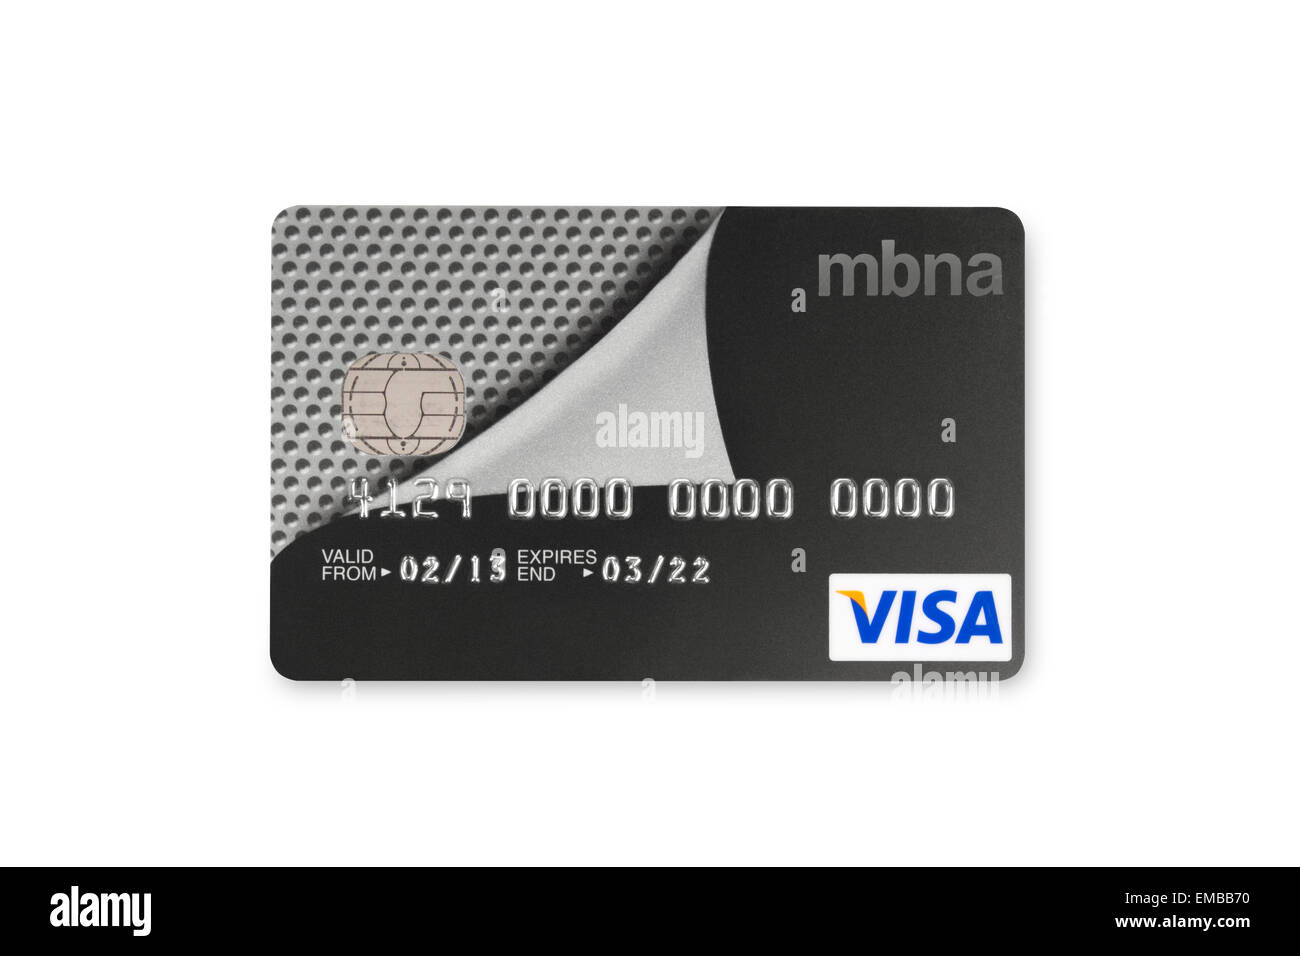 Mbna credit card stock photos mbna credit card stock images alamy mbna visa bank card on white background stock image reheart Image collections